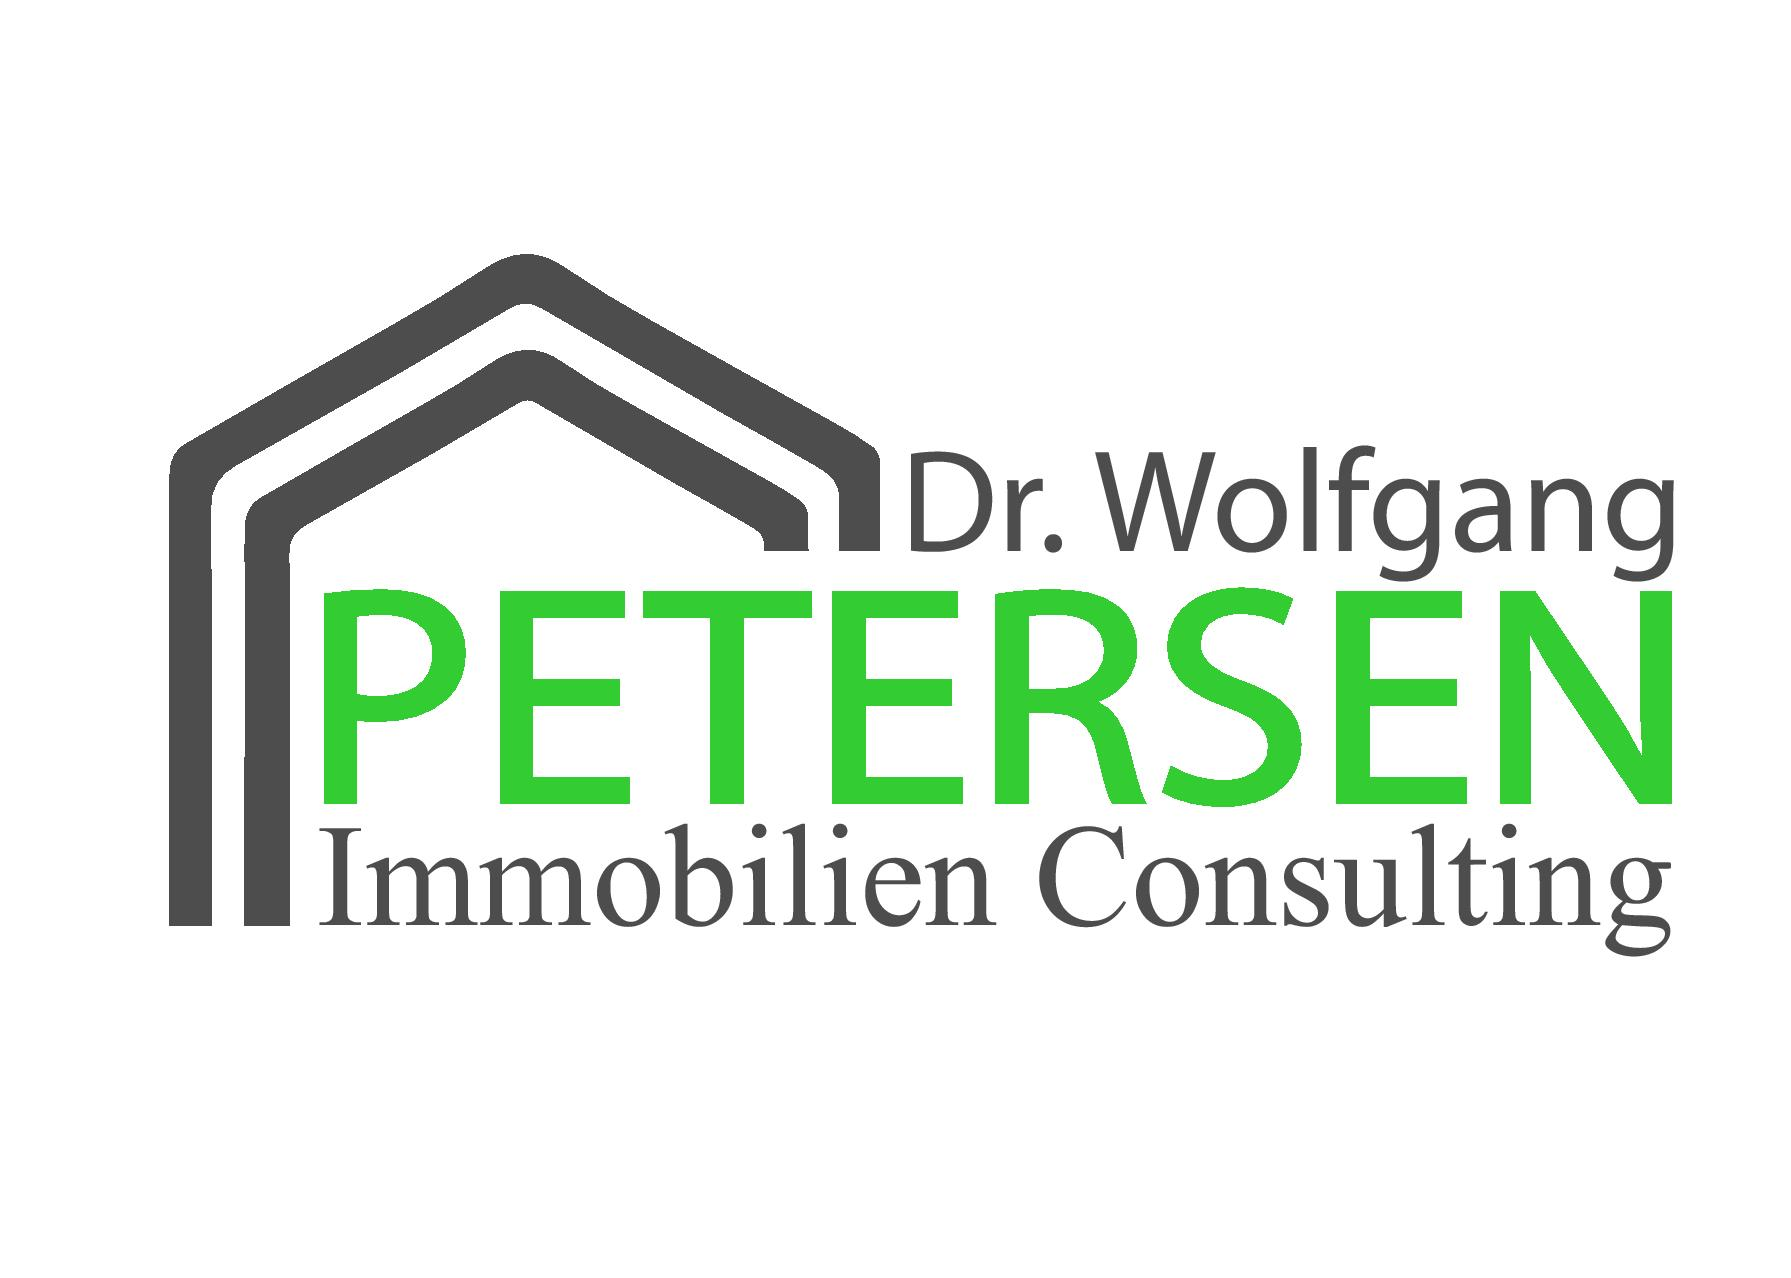 Dr. Wolfgang Petersen Immobilien Consulting